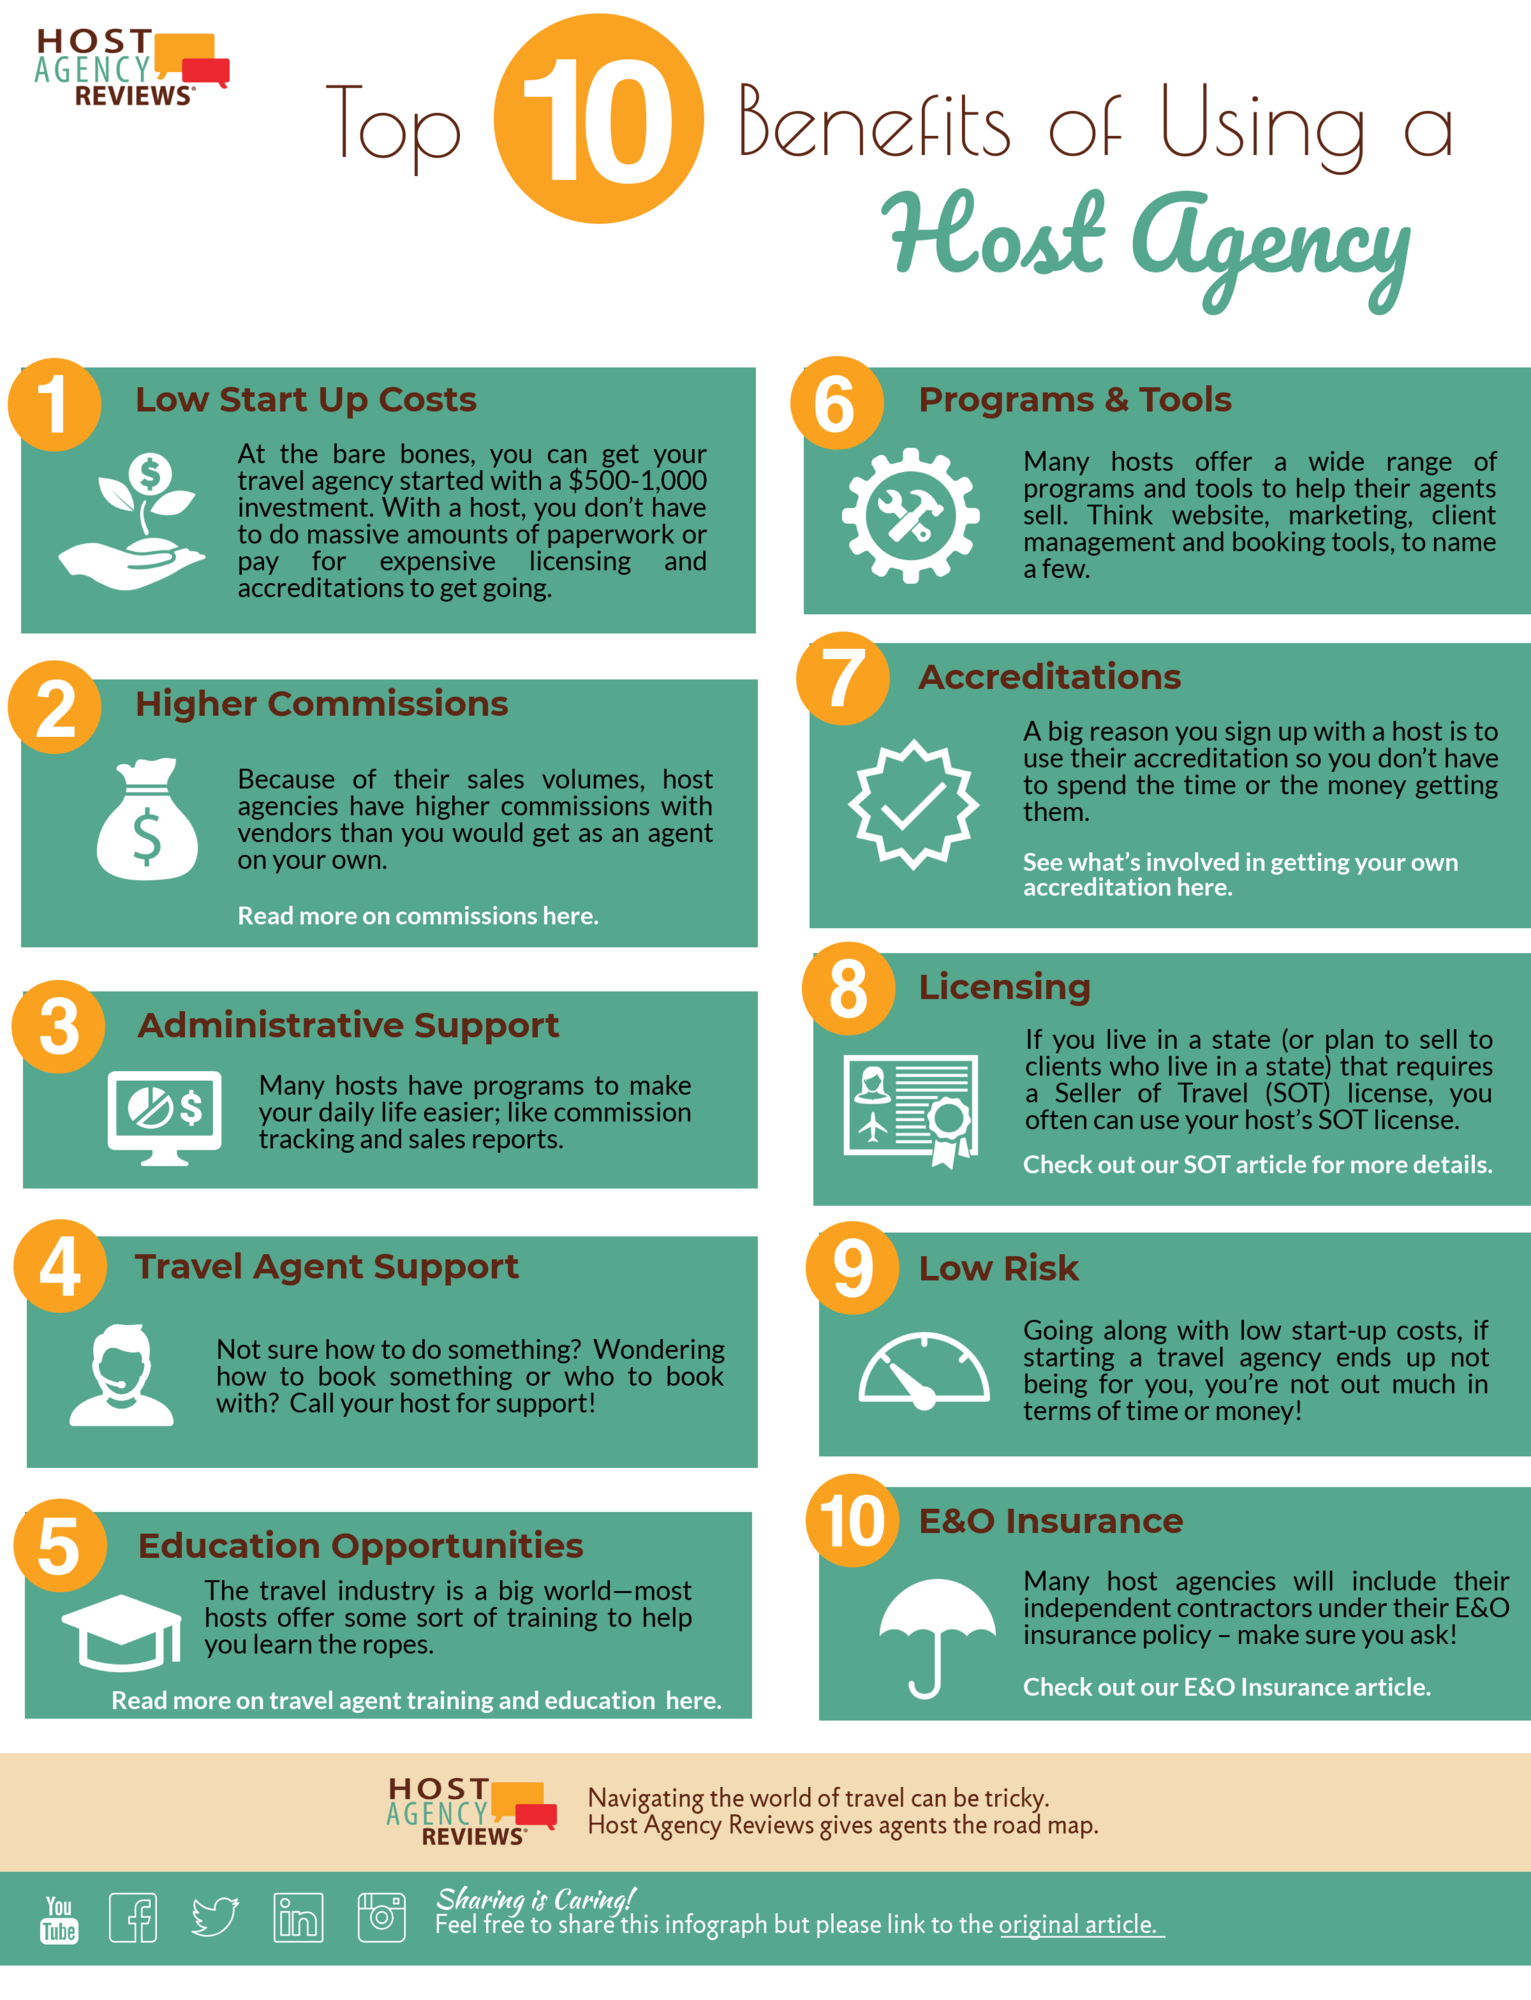 Top 10 Benefits of Using a Host Agency, Infographic